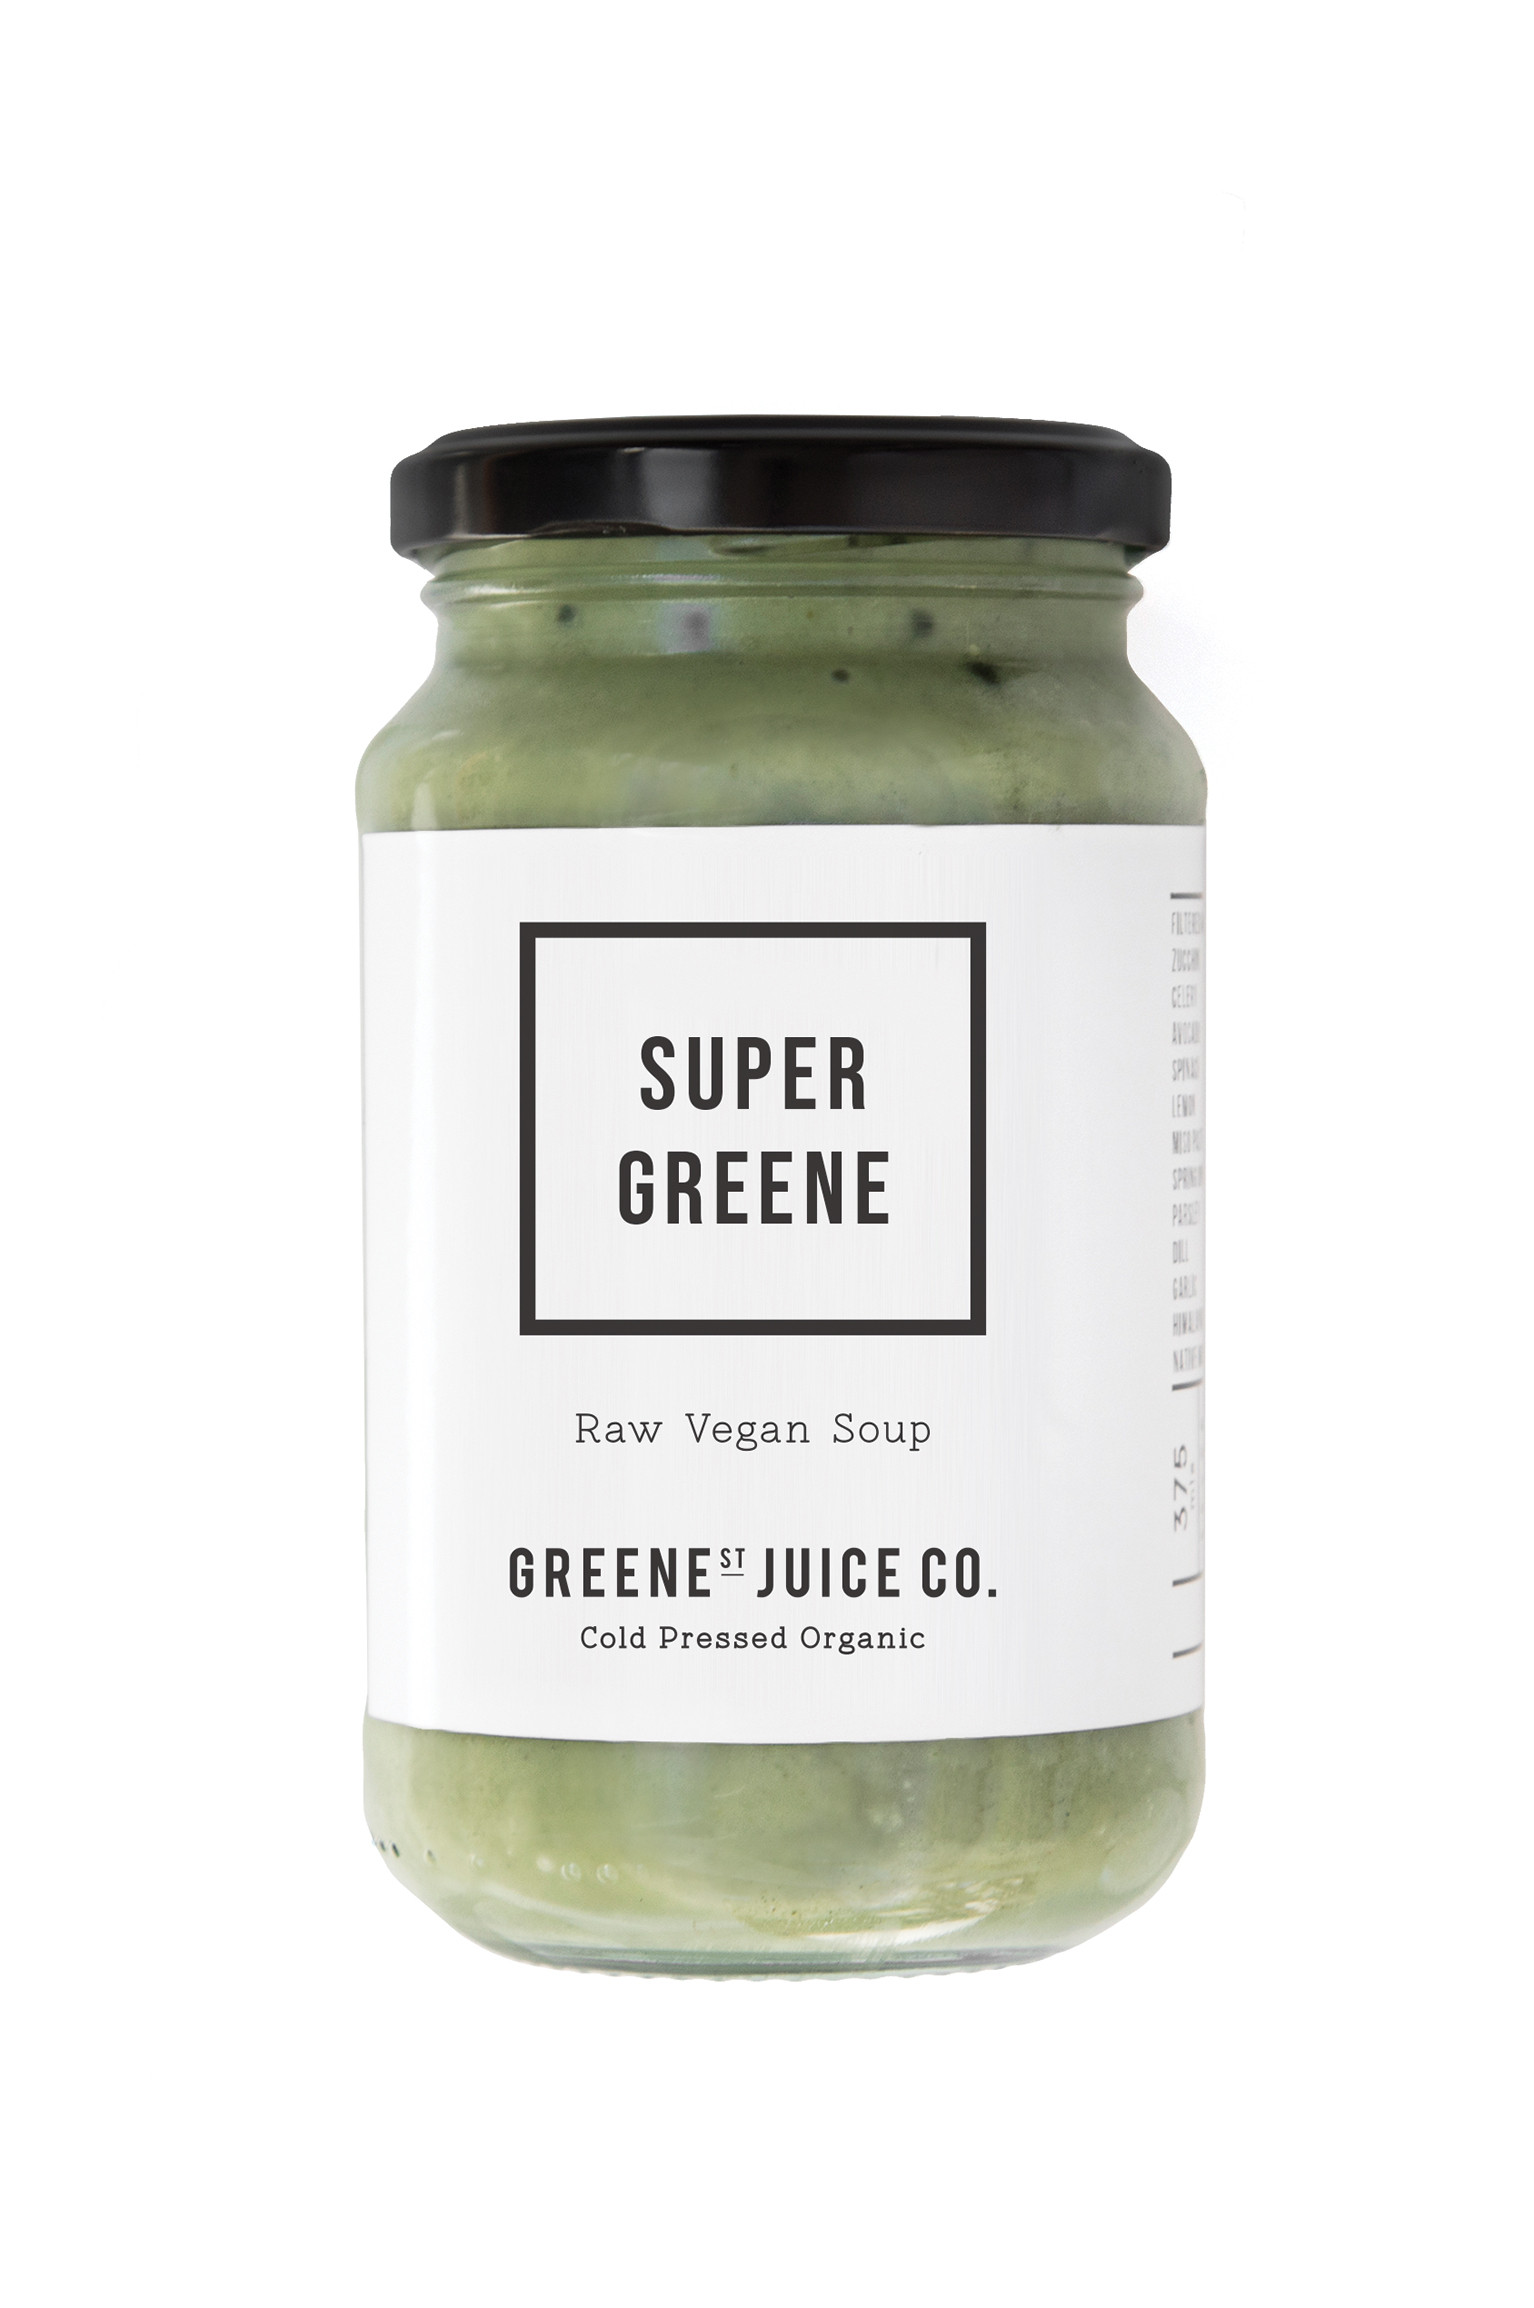 Super Greene Soup